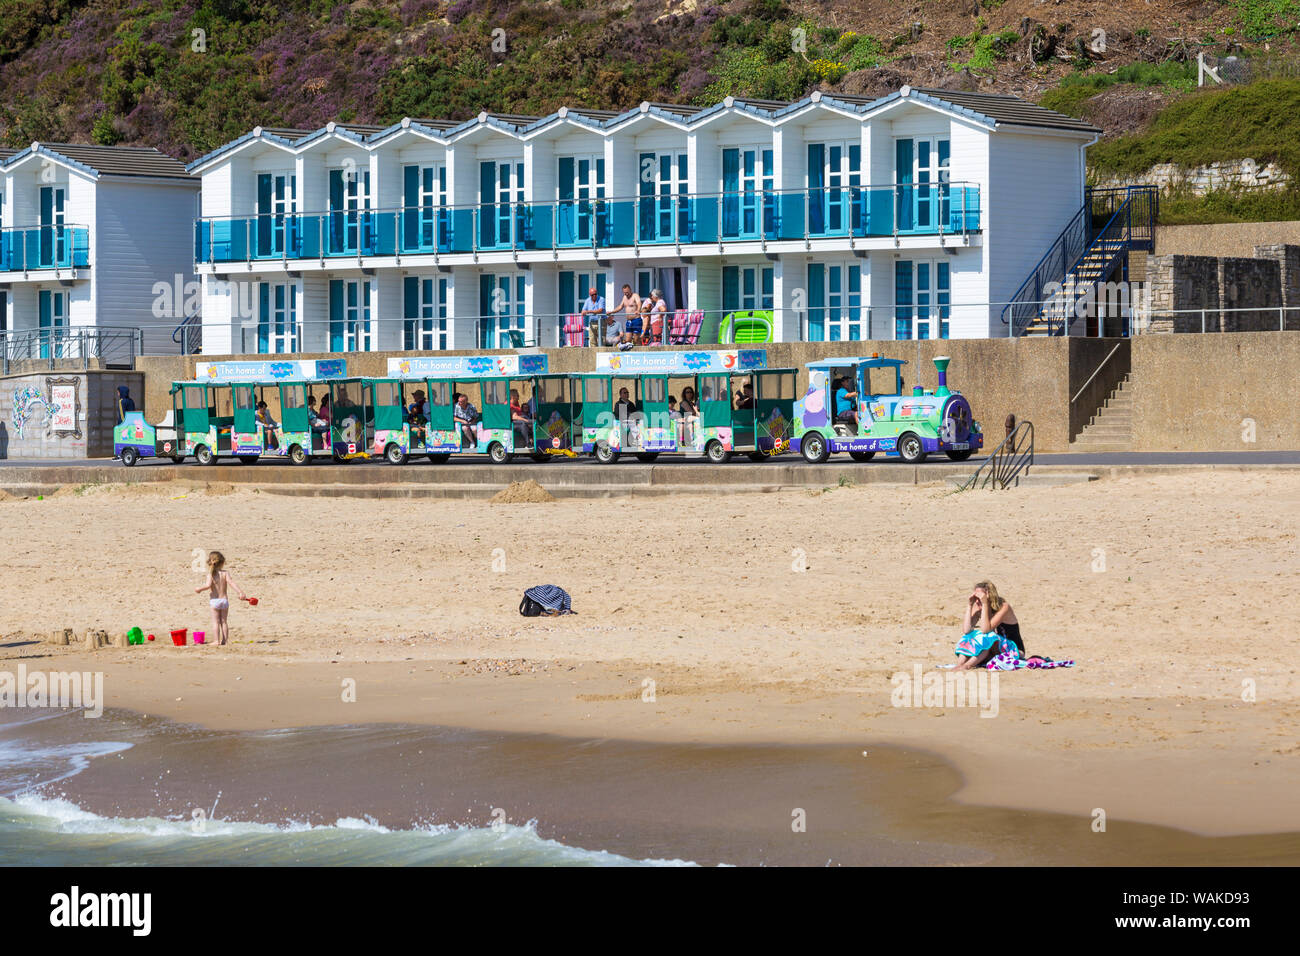 Beach and beach huts at Branksome Chine, Poole, Dorset UK on a warm sunny day in August Stock Photo